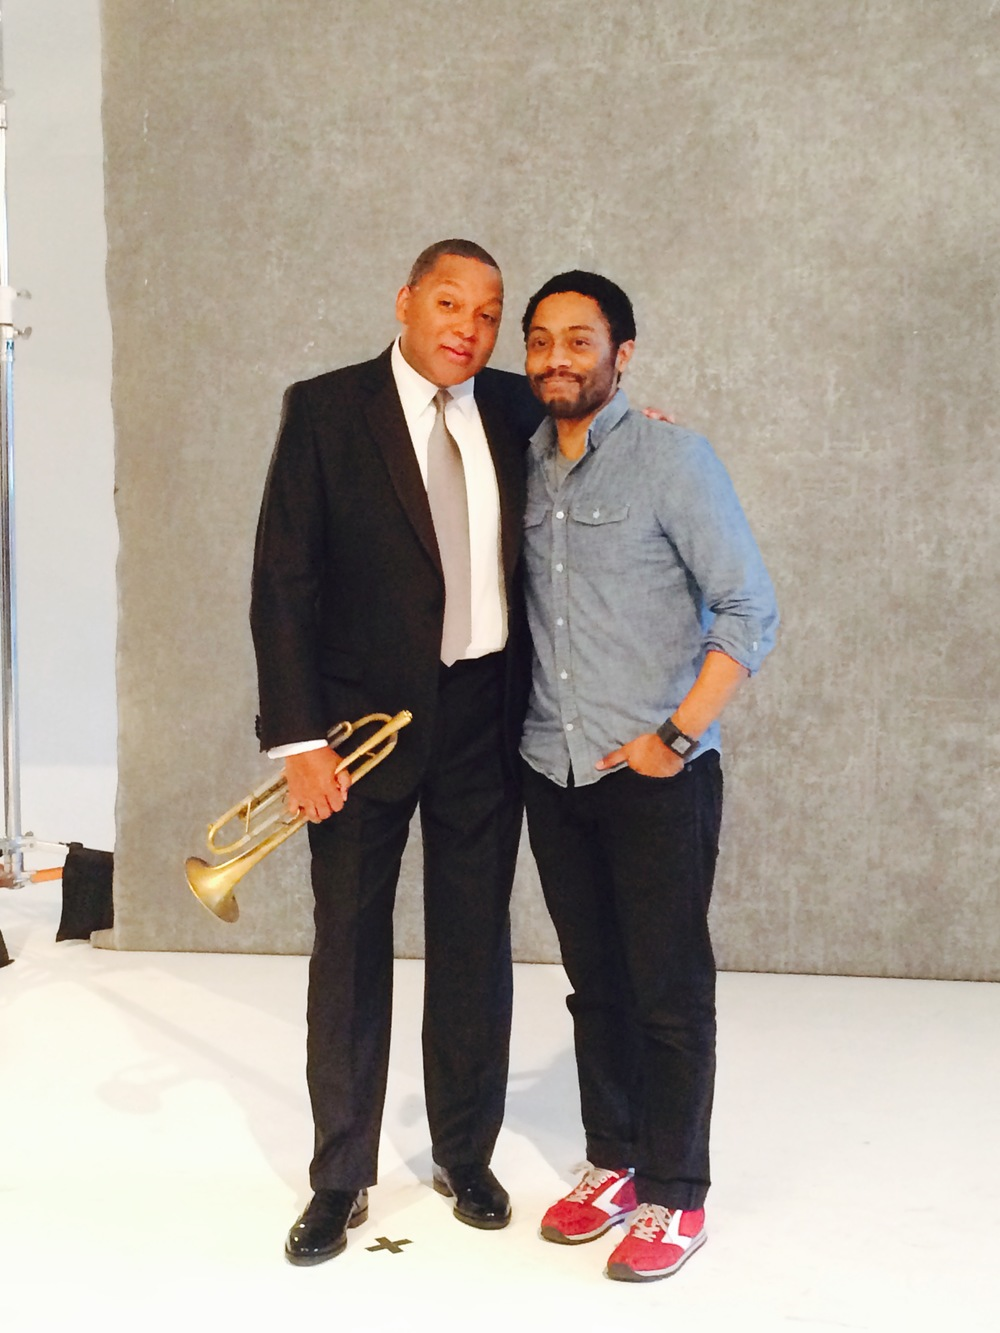 A photo with the man, himself, Wynton Marsalis